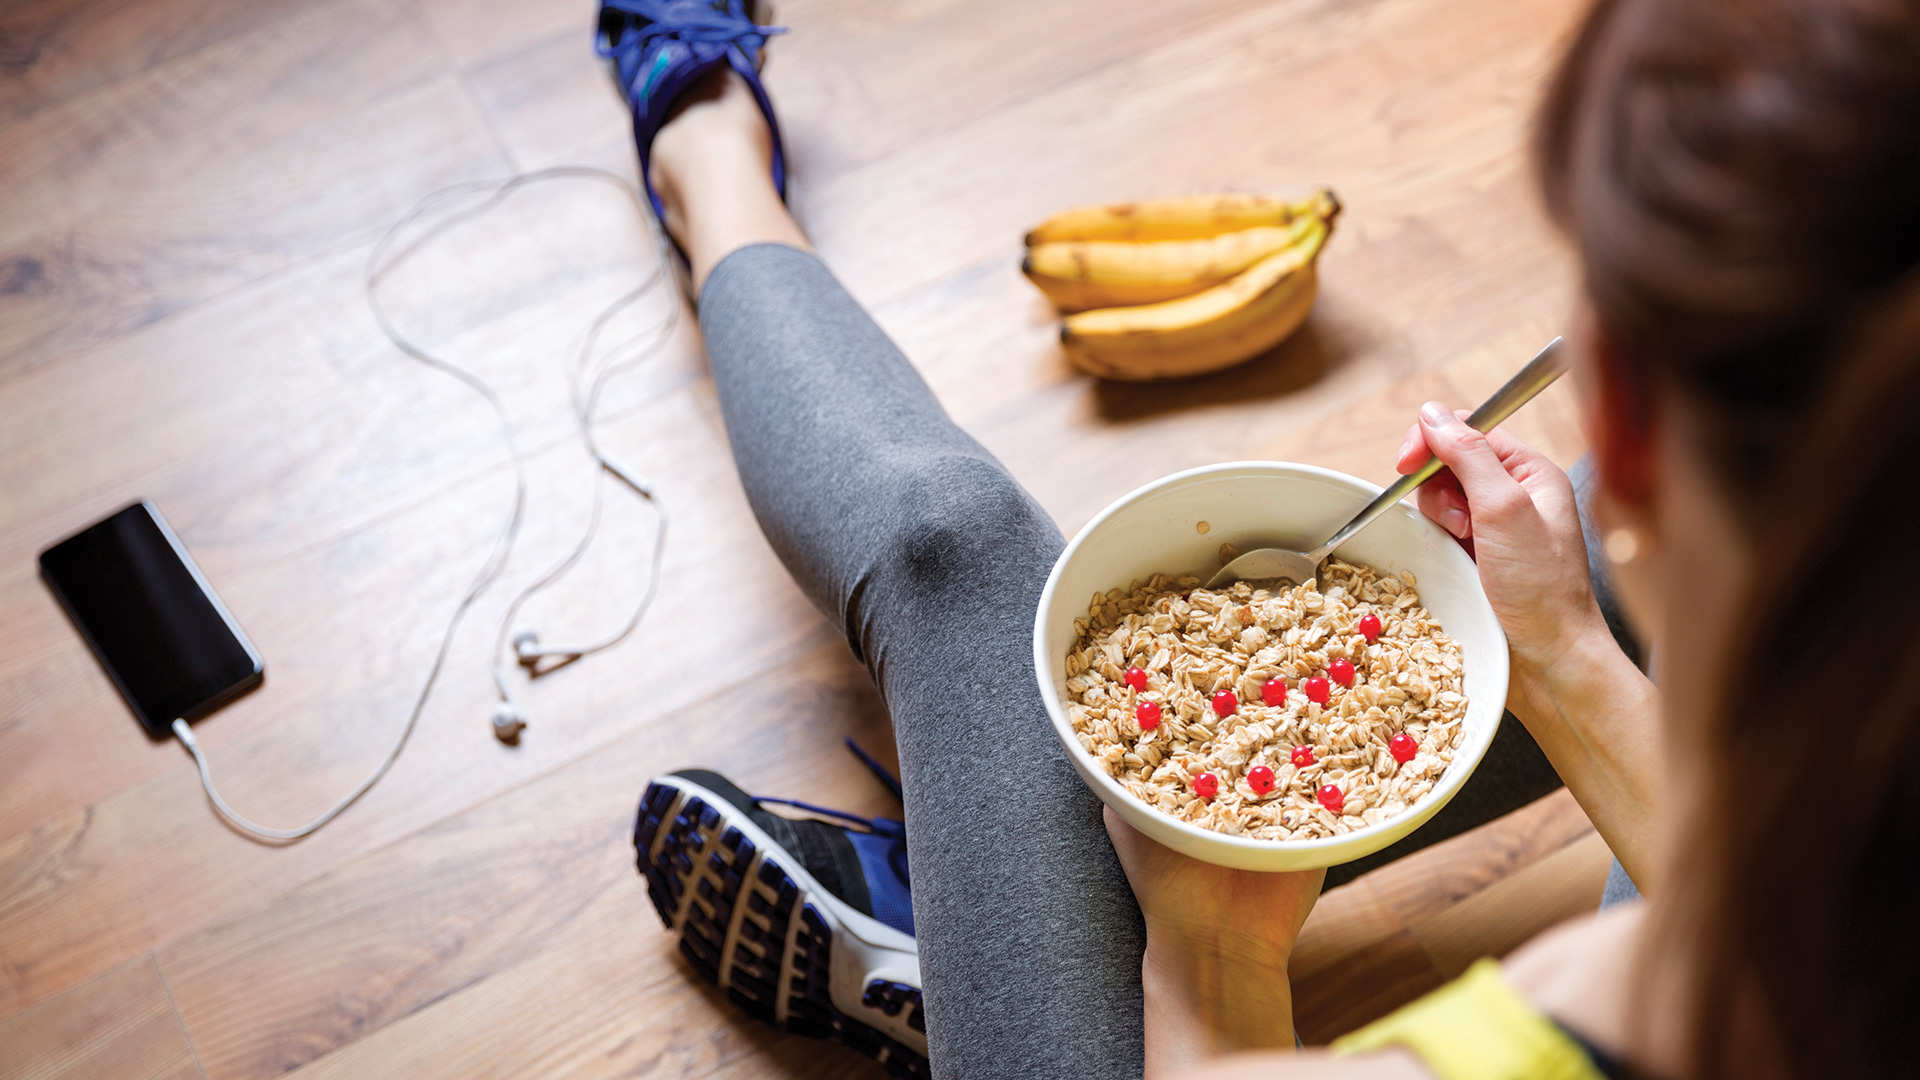 Getting the right nutrients before and after your workout can improve performance and keep you healthy. That's why we spoke with Jennifer Lowrie, RDN, CSSD, LDN, CDE, a board specialist in sports dietetics dietitian at Atrium Health, to get tips that you need to fuel your workout.